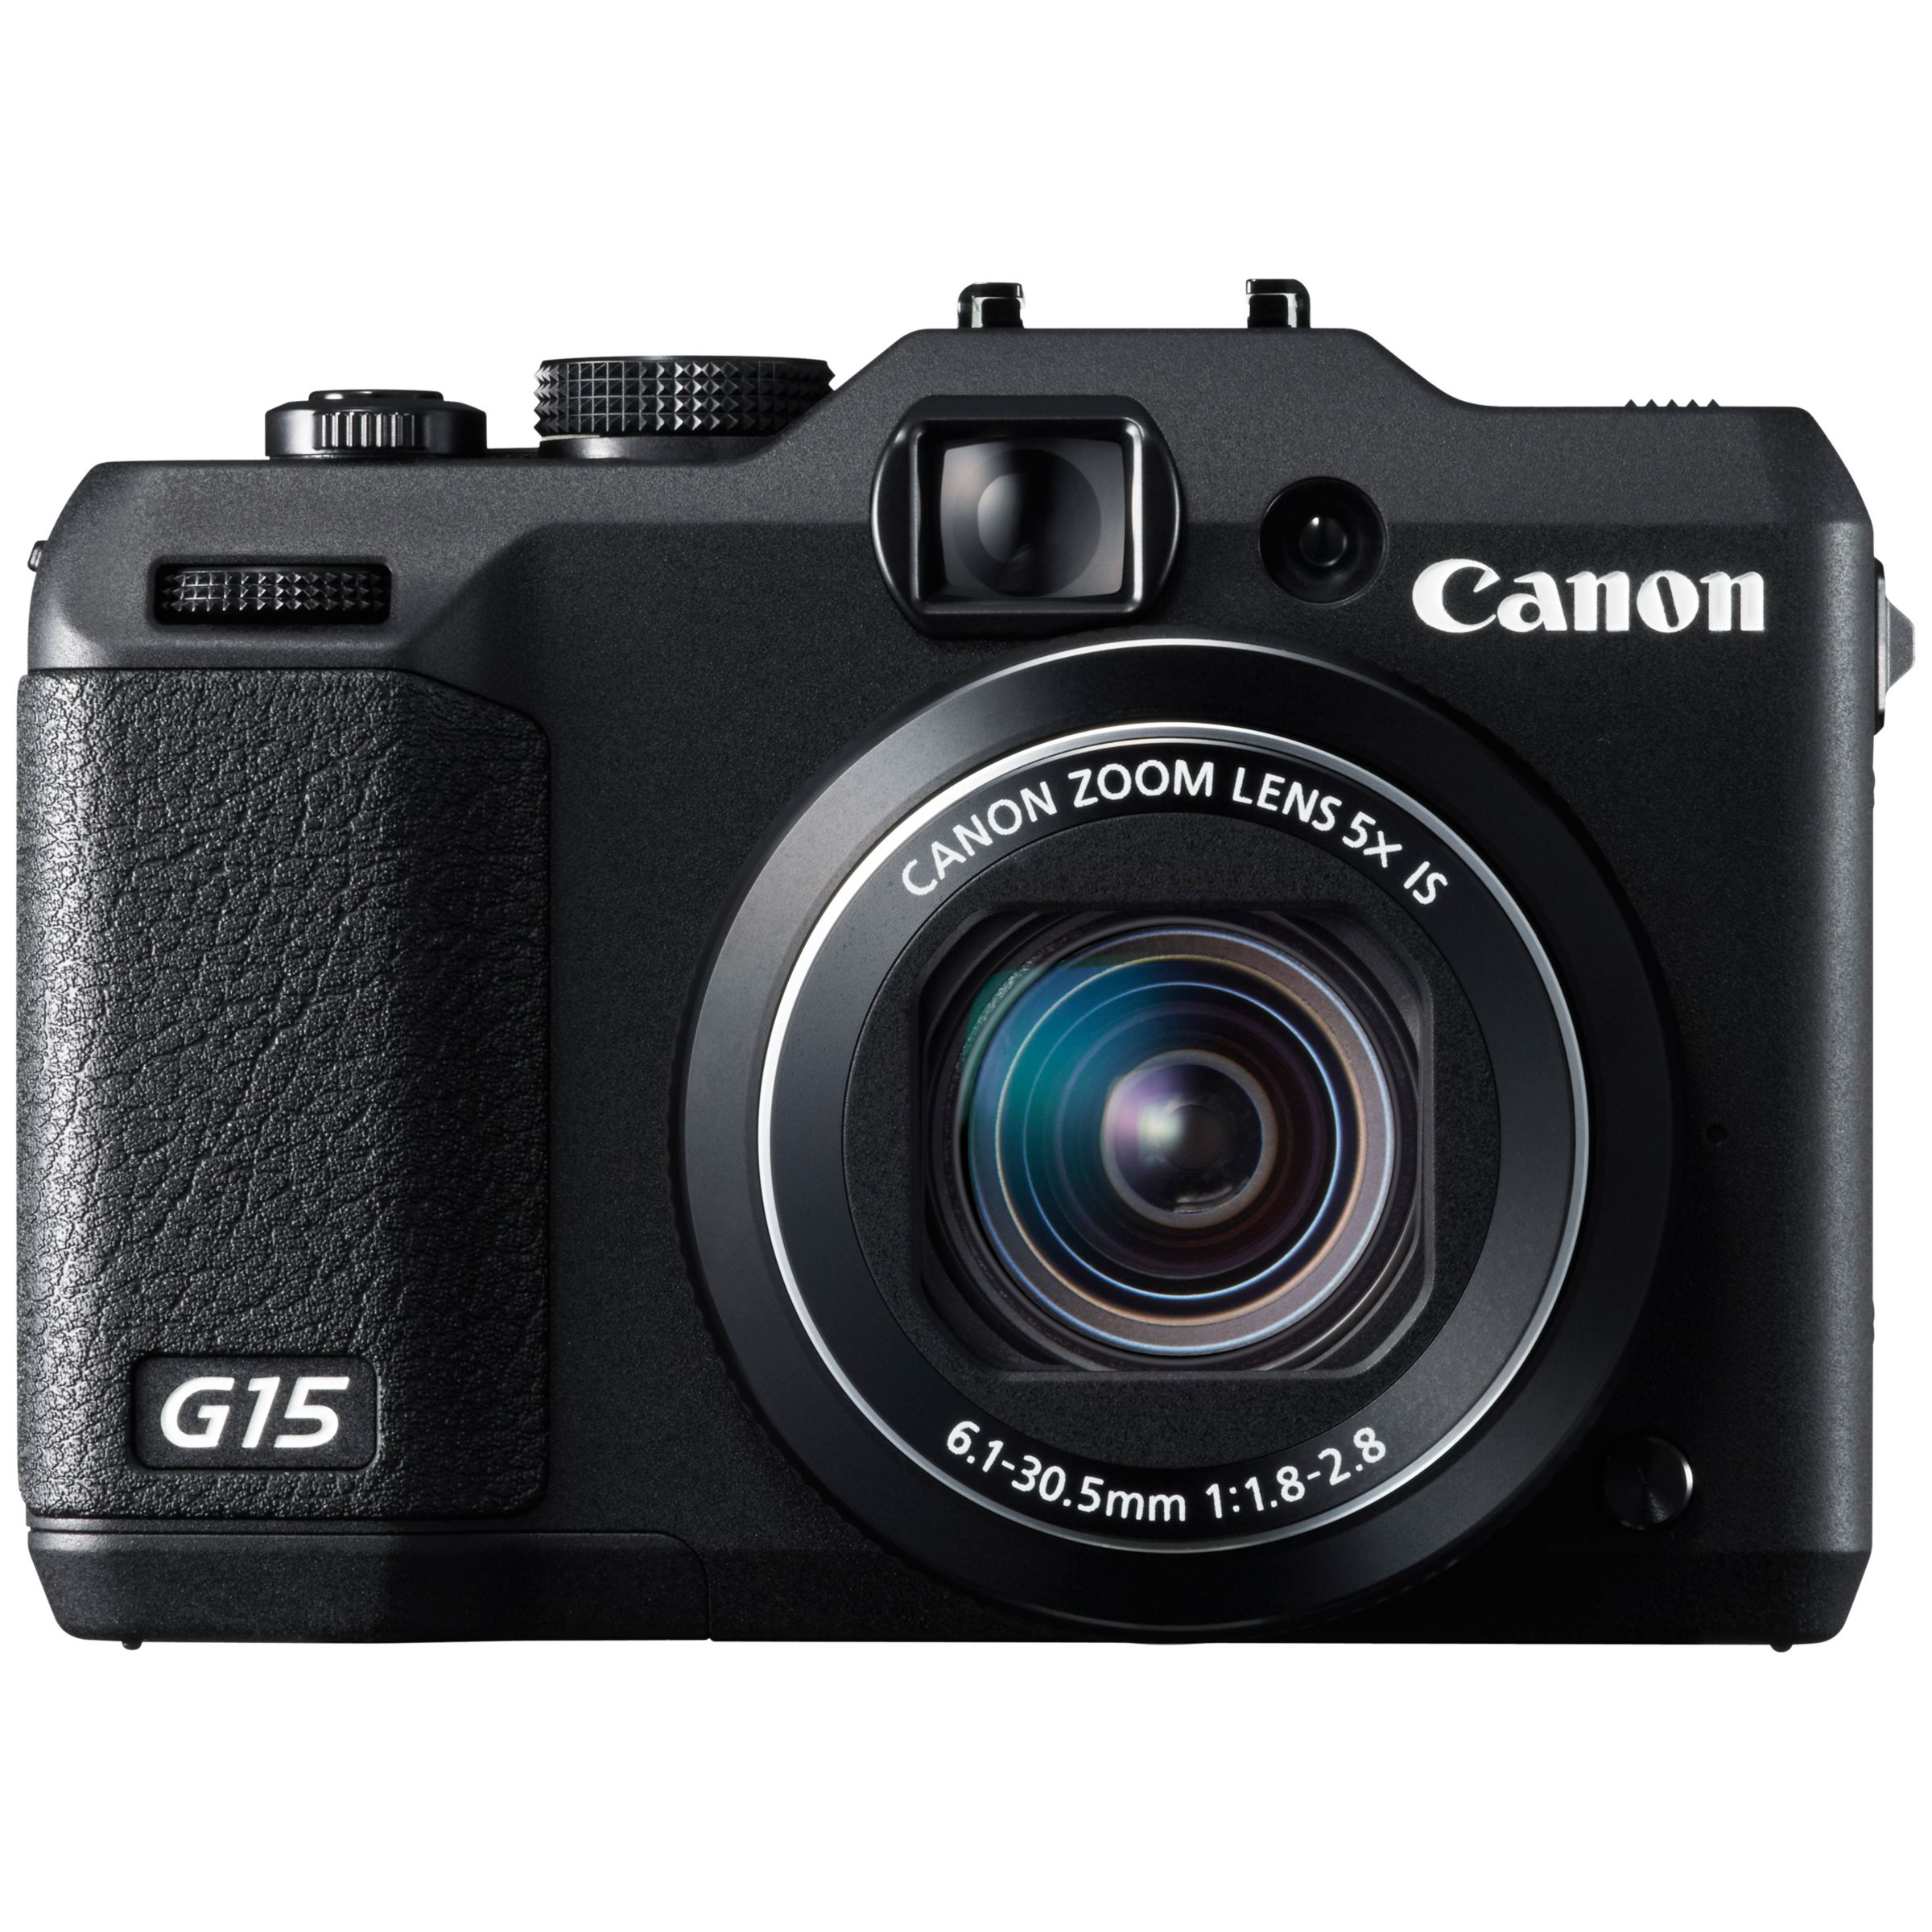 Canon PowerShot G15 Digital Camera  HD 1080p  12 1MP  5x Optical Zoom    Canon Hd Camera 1080p